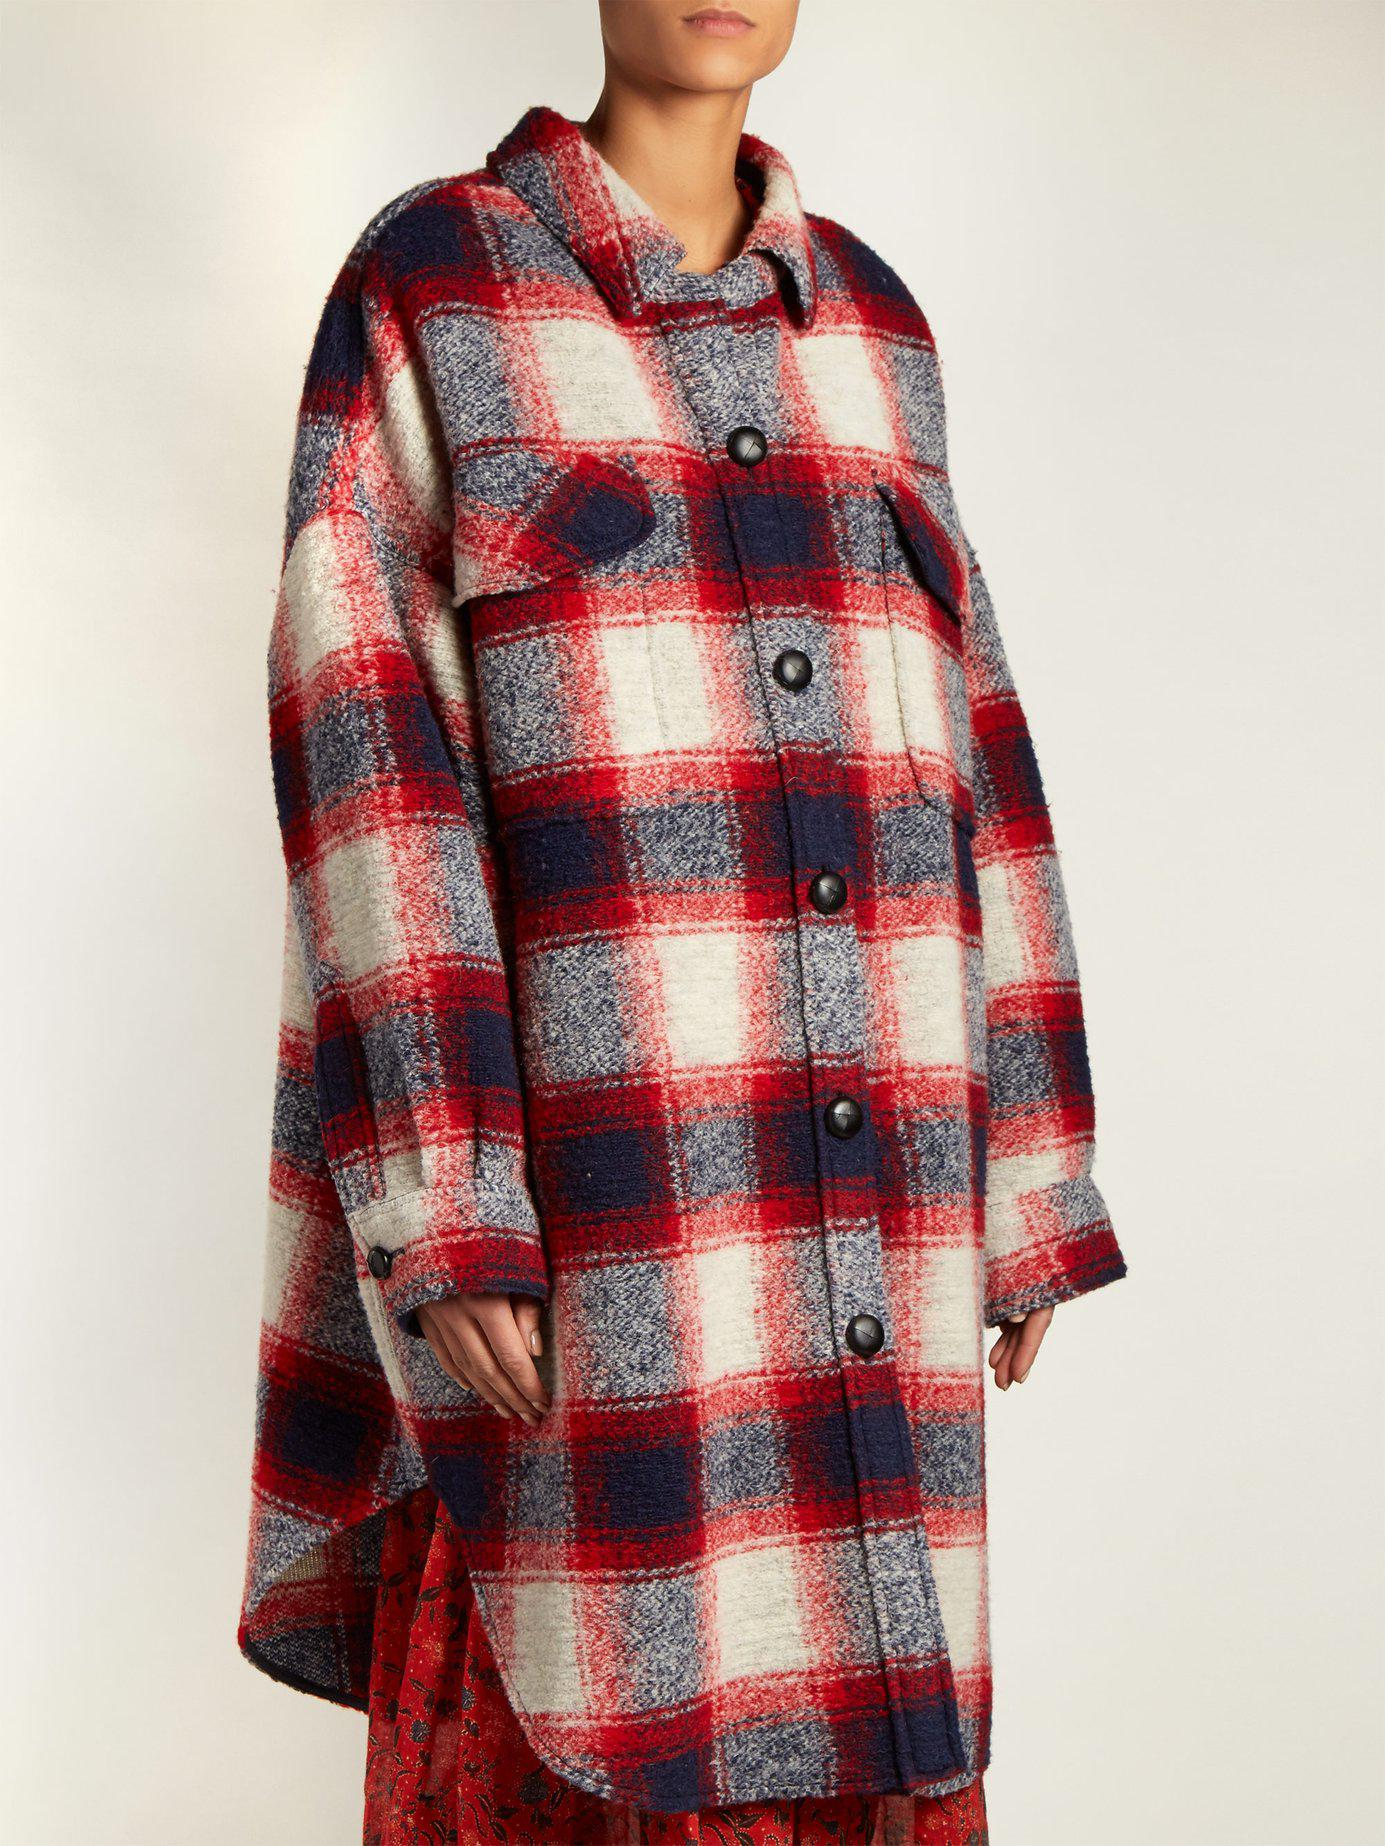 201 Toile Isabel Marant Gario Oversized Checked Wool Coat In